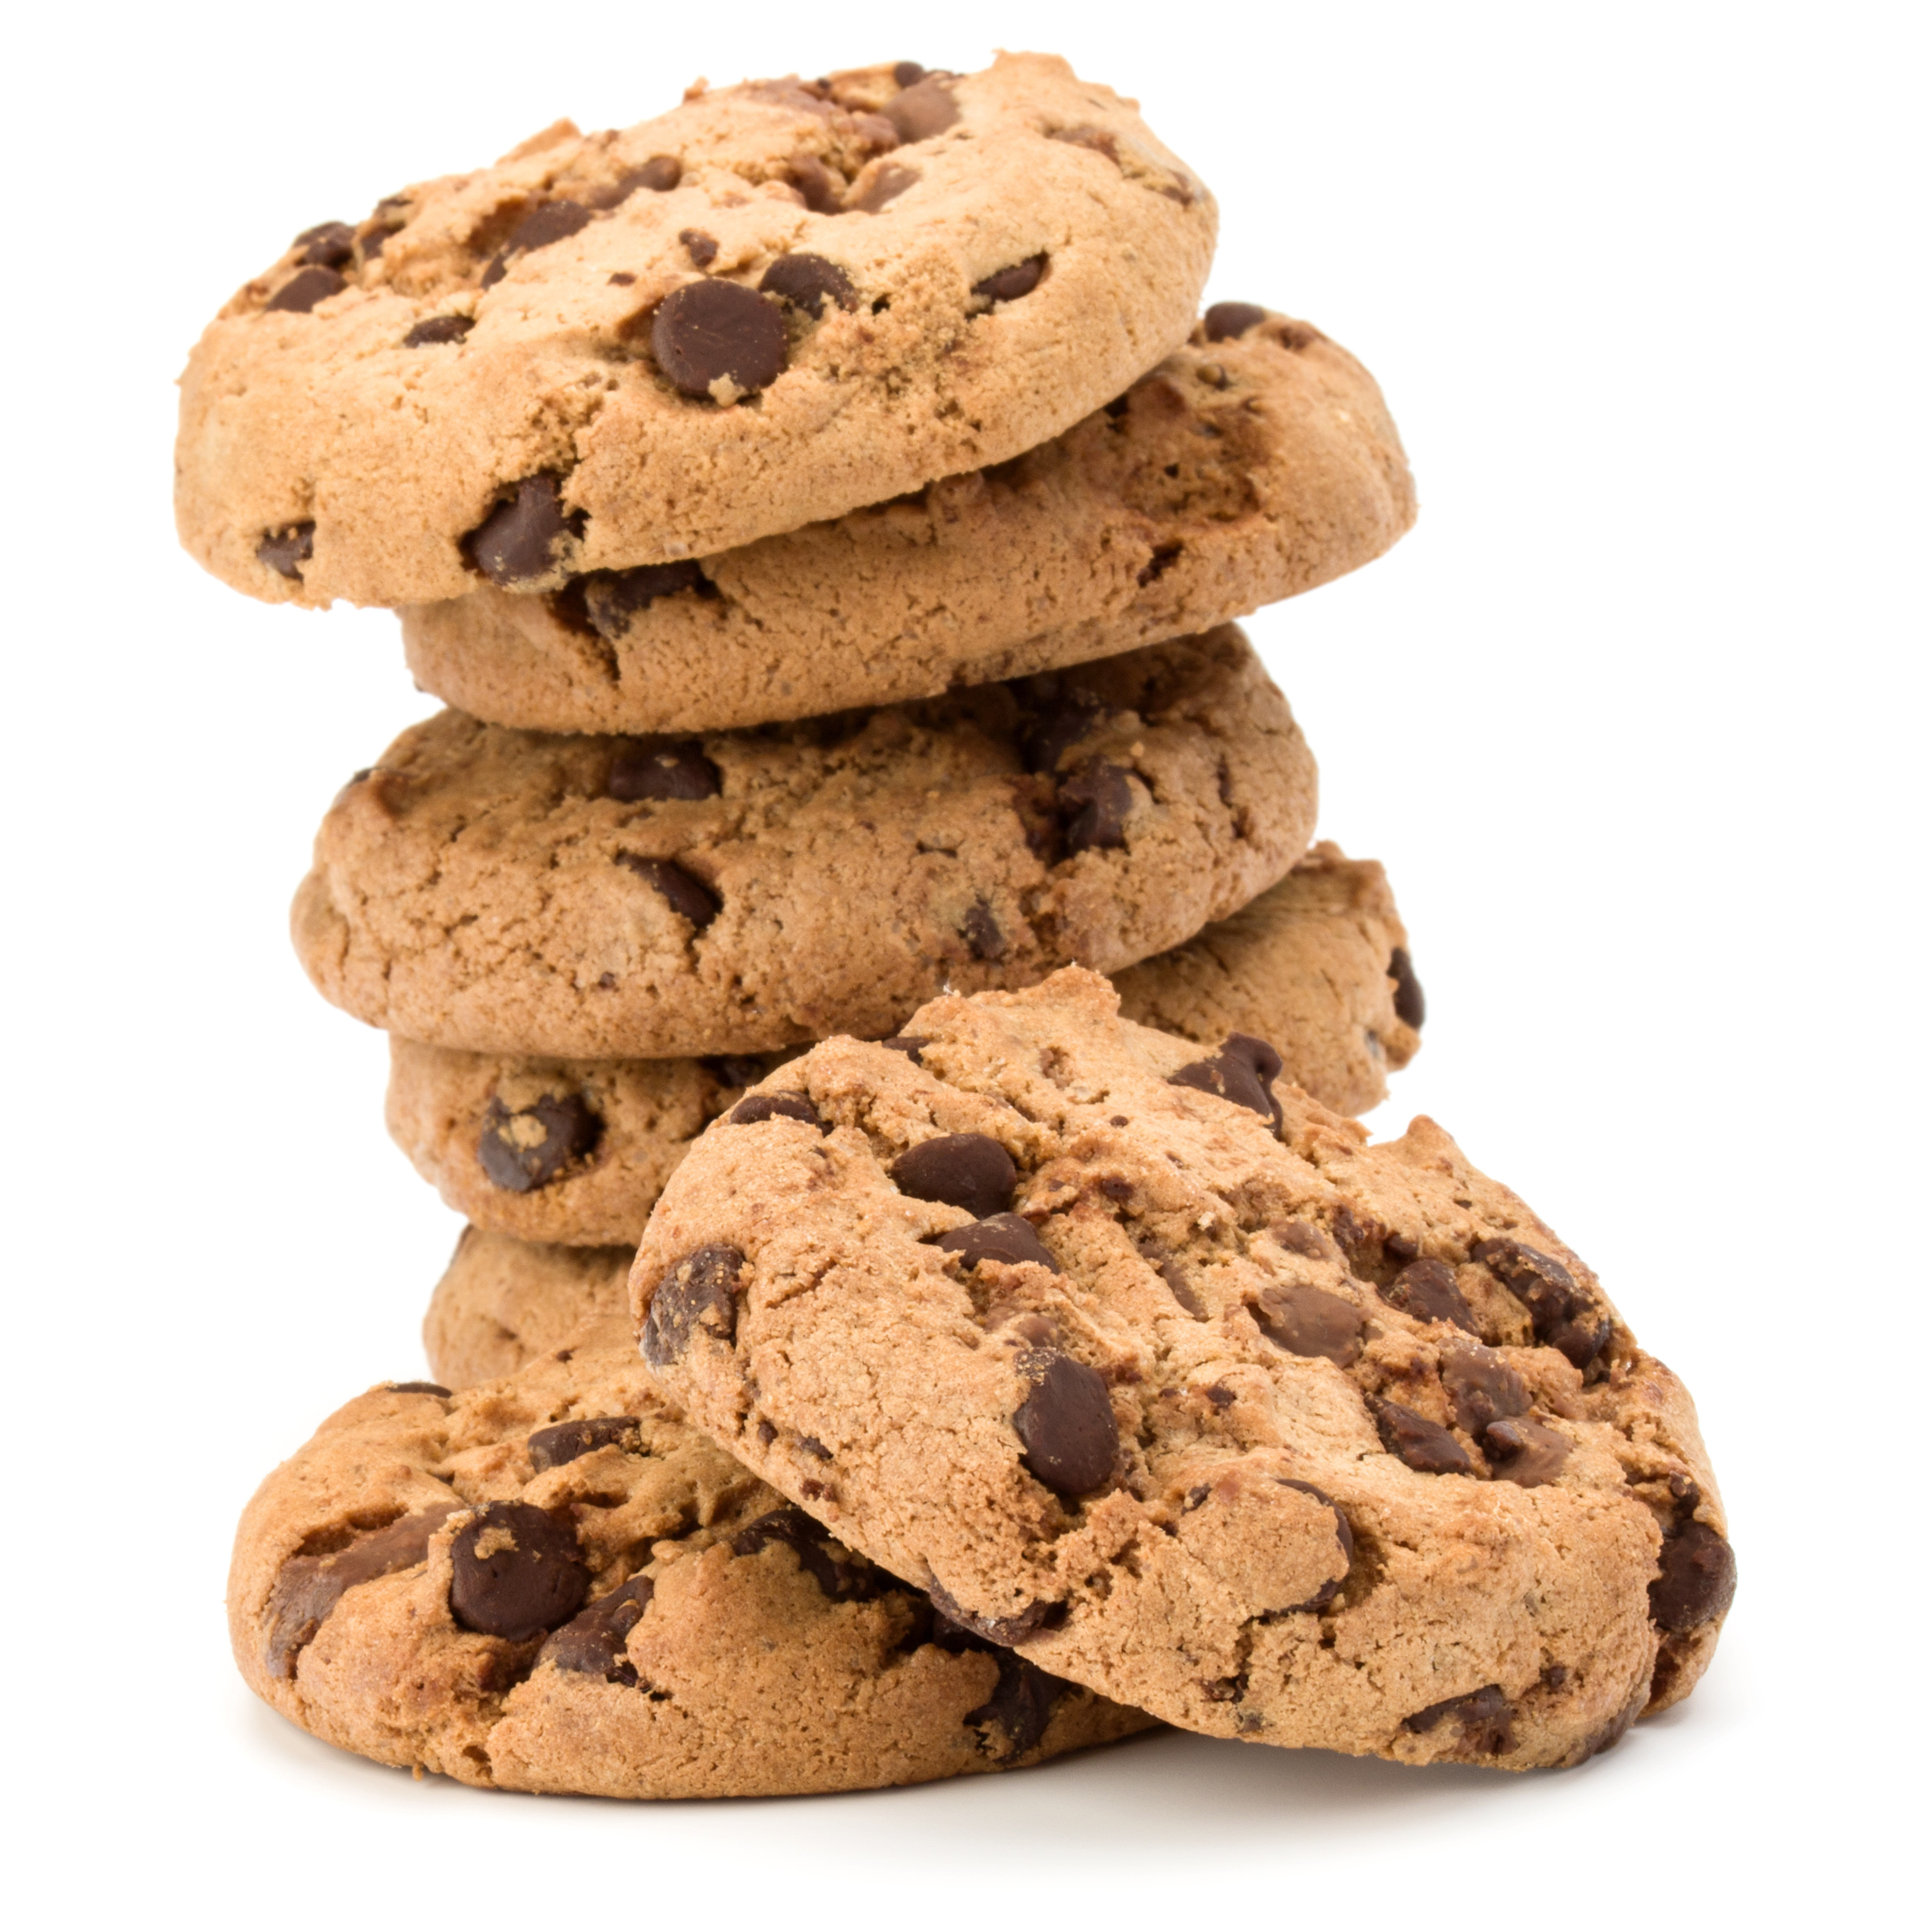 bigstock-Stacked-Chocolate-chip-cookies-161282153